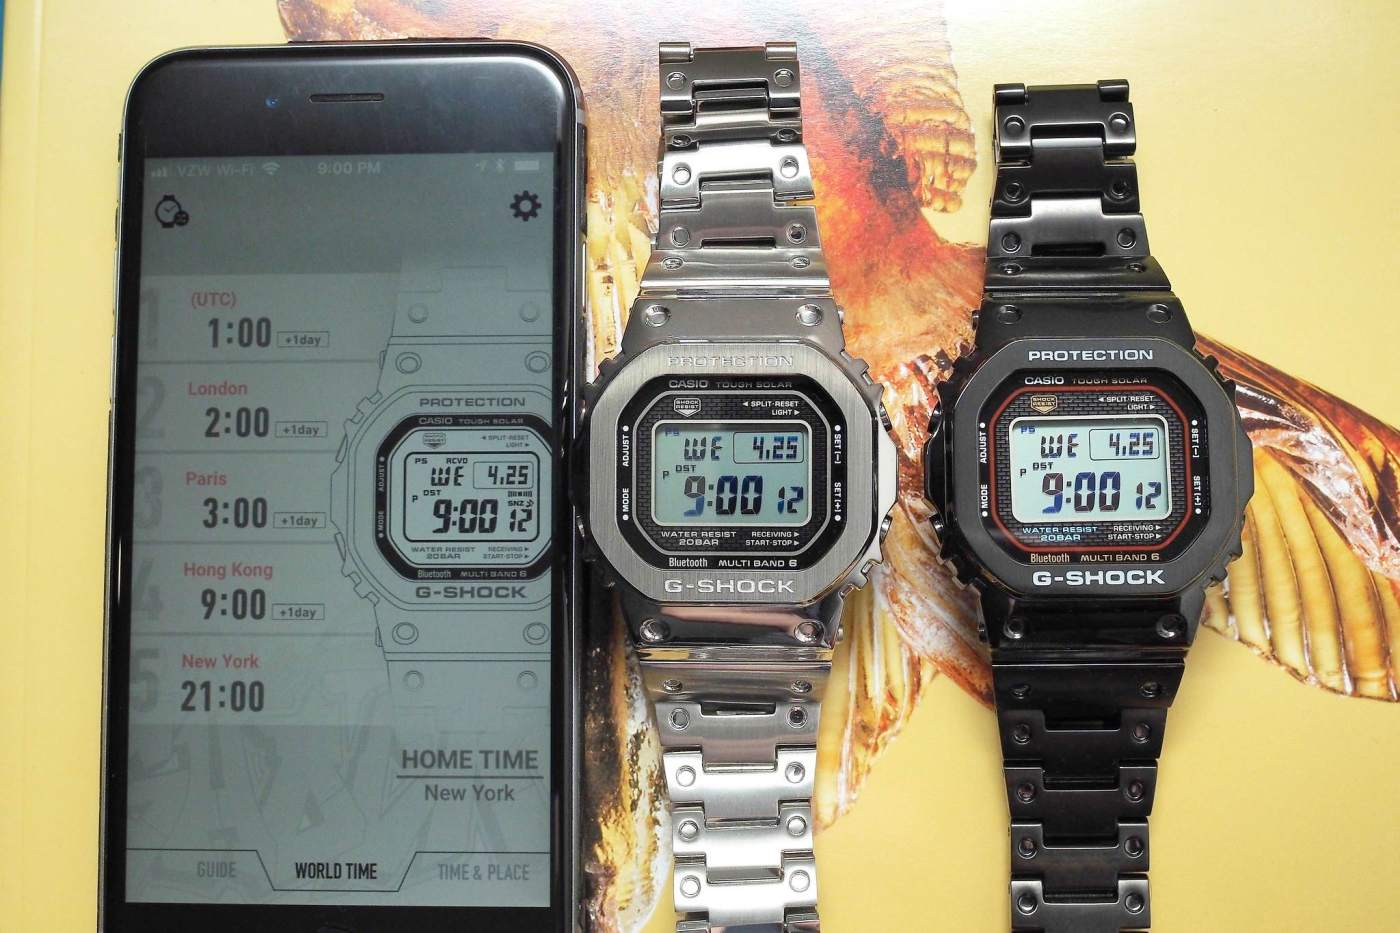 G-Shock Connected App showing two Full Metal 5000 Series watches in perfect sync